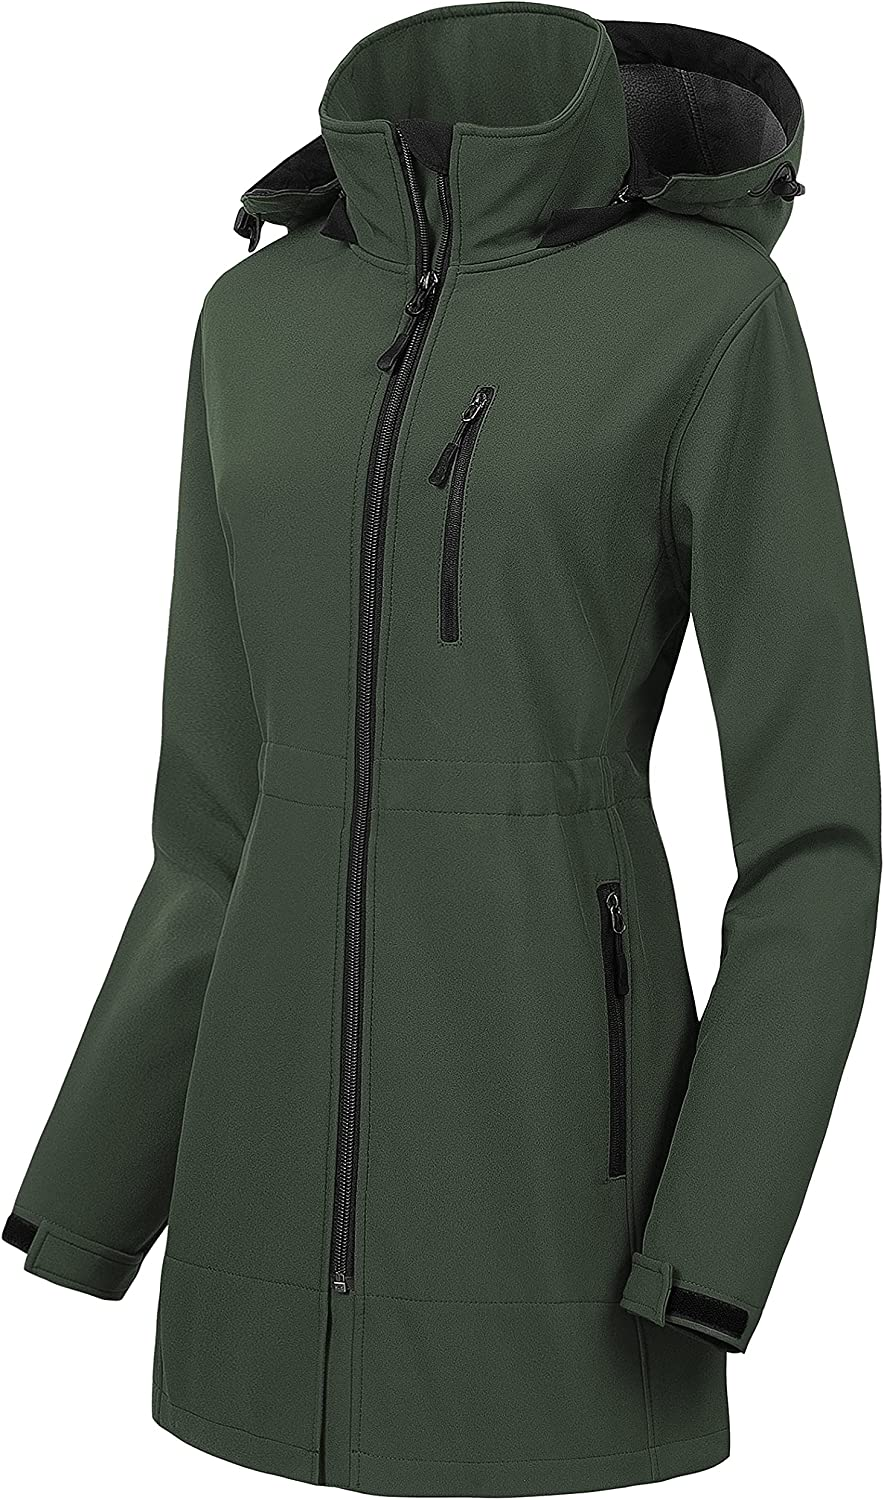 CREATMO US Super Free shipping on posting reviews sale Women's Lightweight Softshell Waterproof Tactica Long